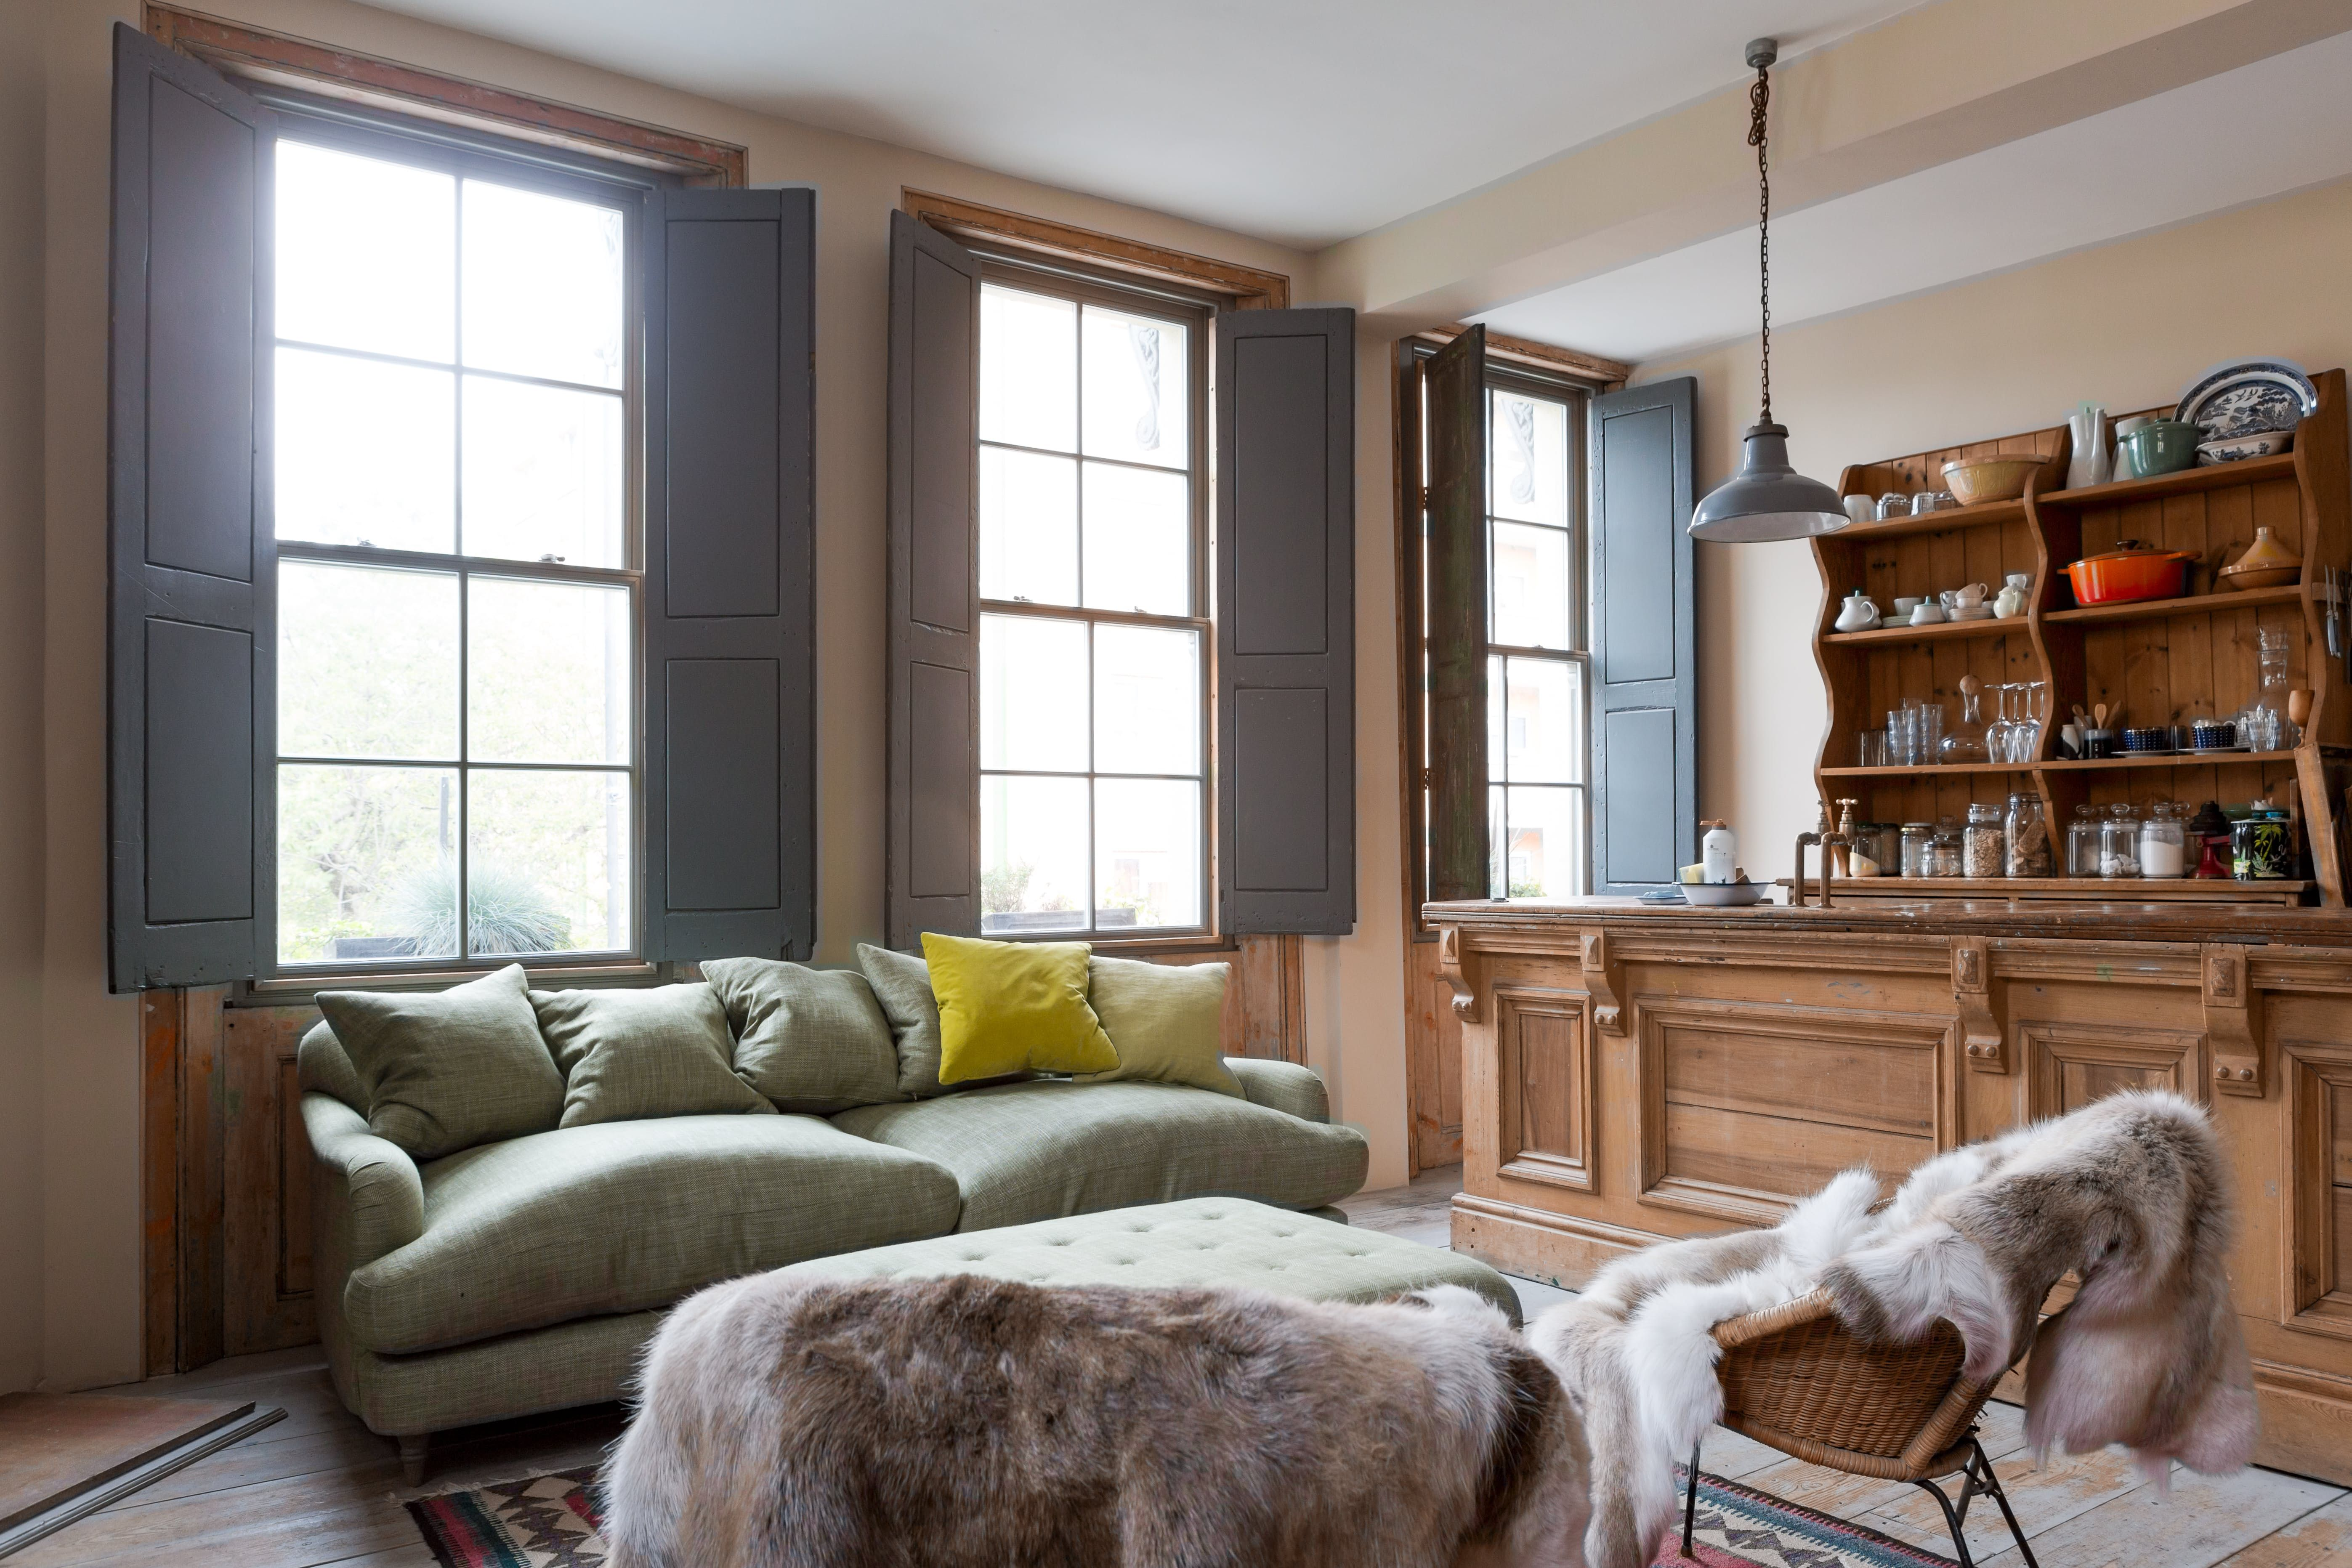 1950's home interior design house tour a former london pub turned cozy home  furniture